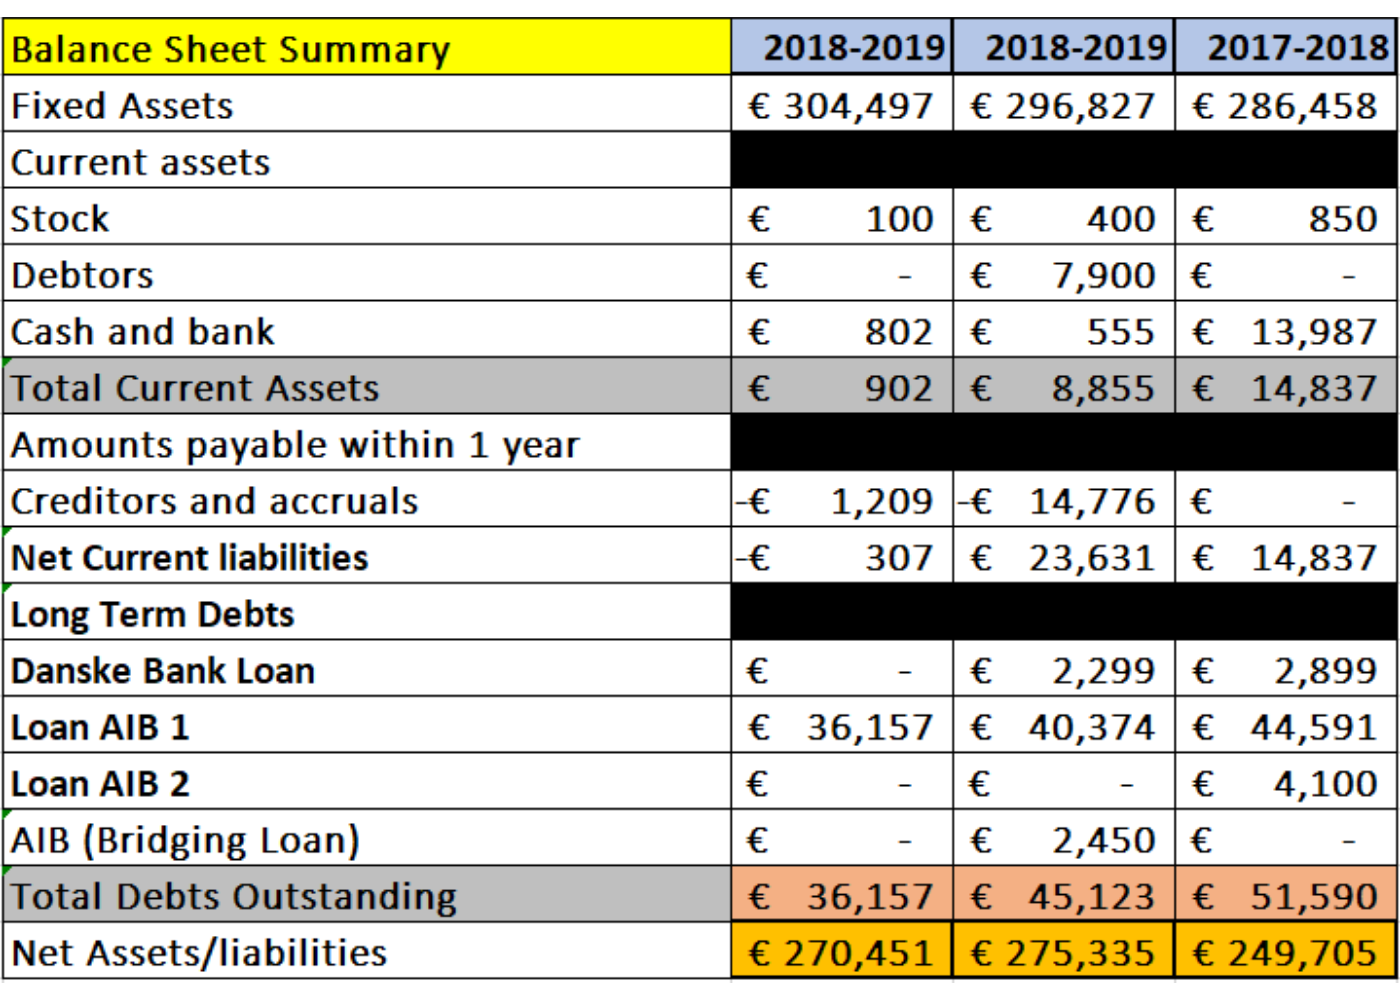 Balance Sheet Summary